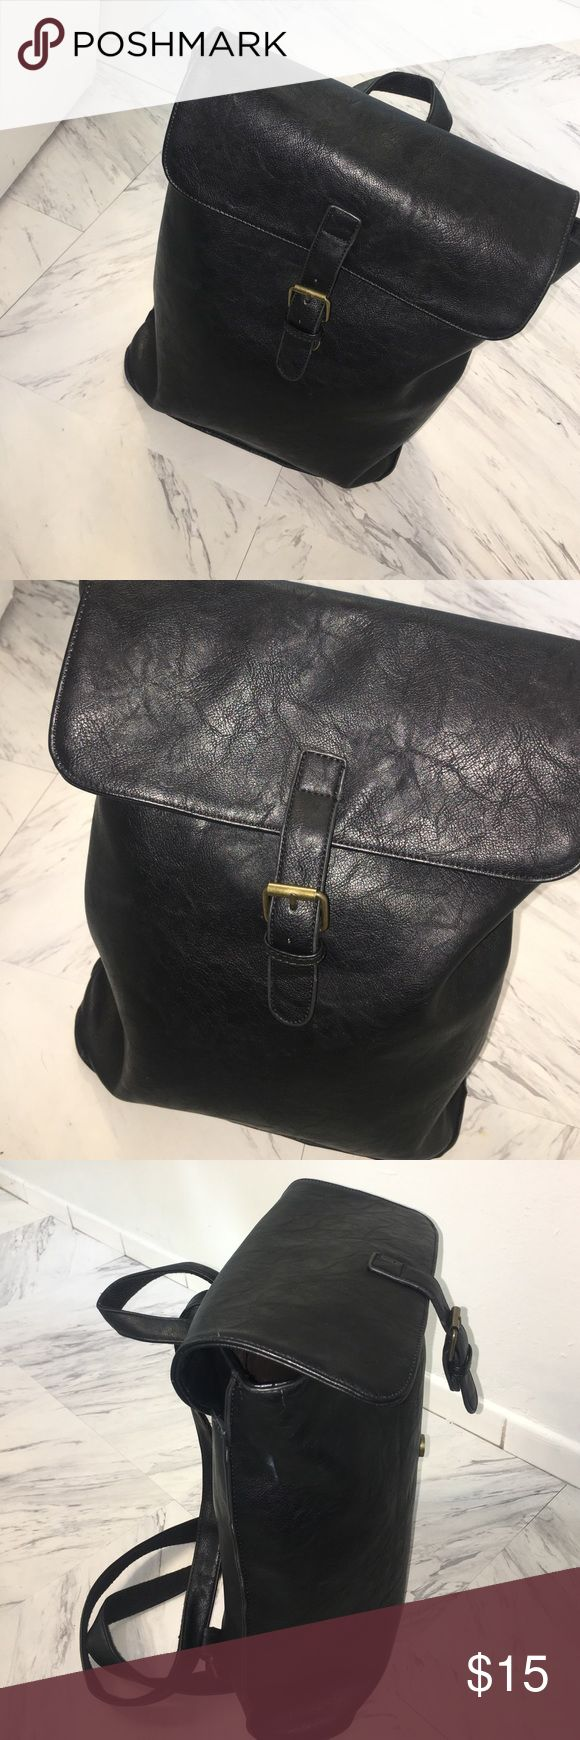 Faux Leather Backpack L:13 W:12 this is a  fashionable backpack to take to your next outing whether it's to the Fair, Music Festival, or Shopping downtown with friends. This is a perfect piece to add to your collection. Great condition, only used a few times then stored away in my closet. Bags Backpacks